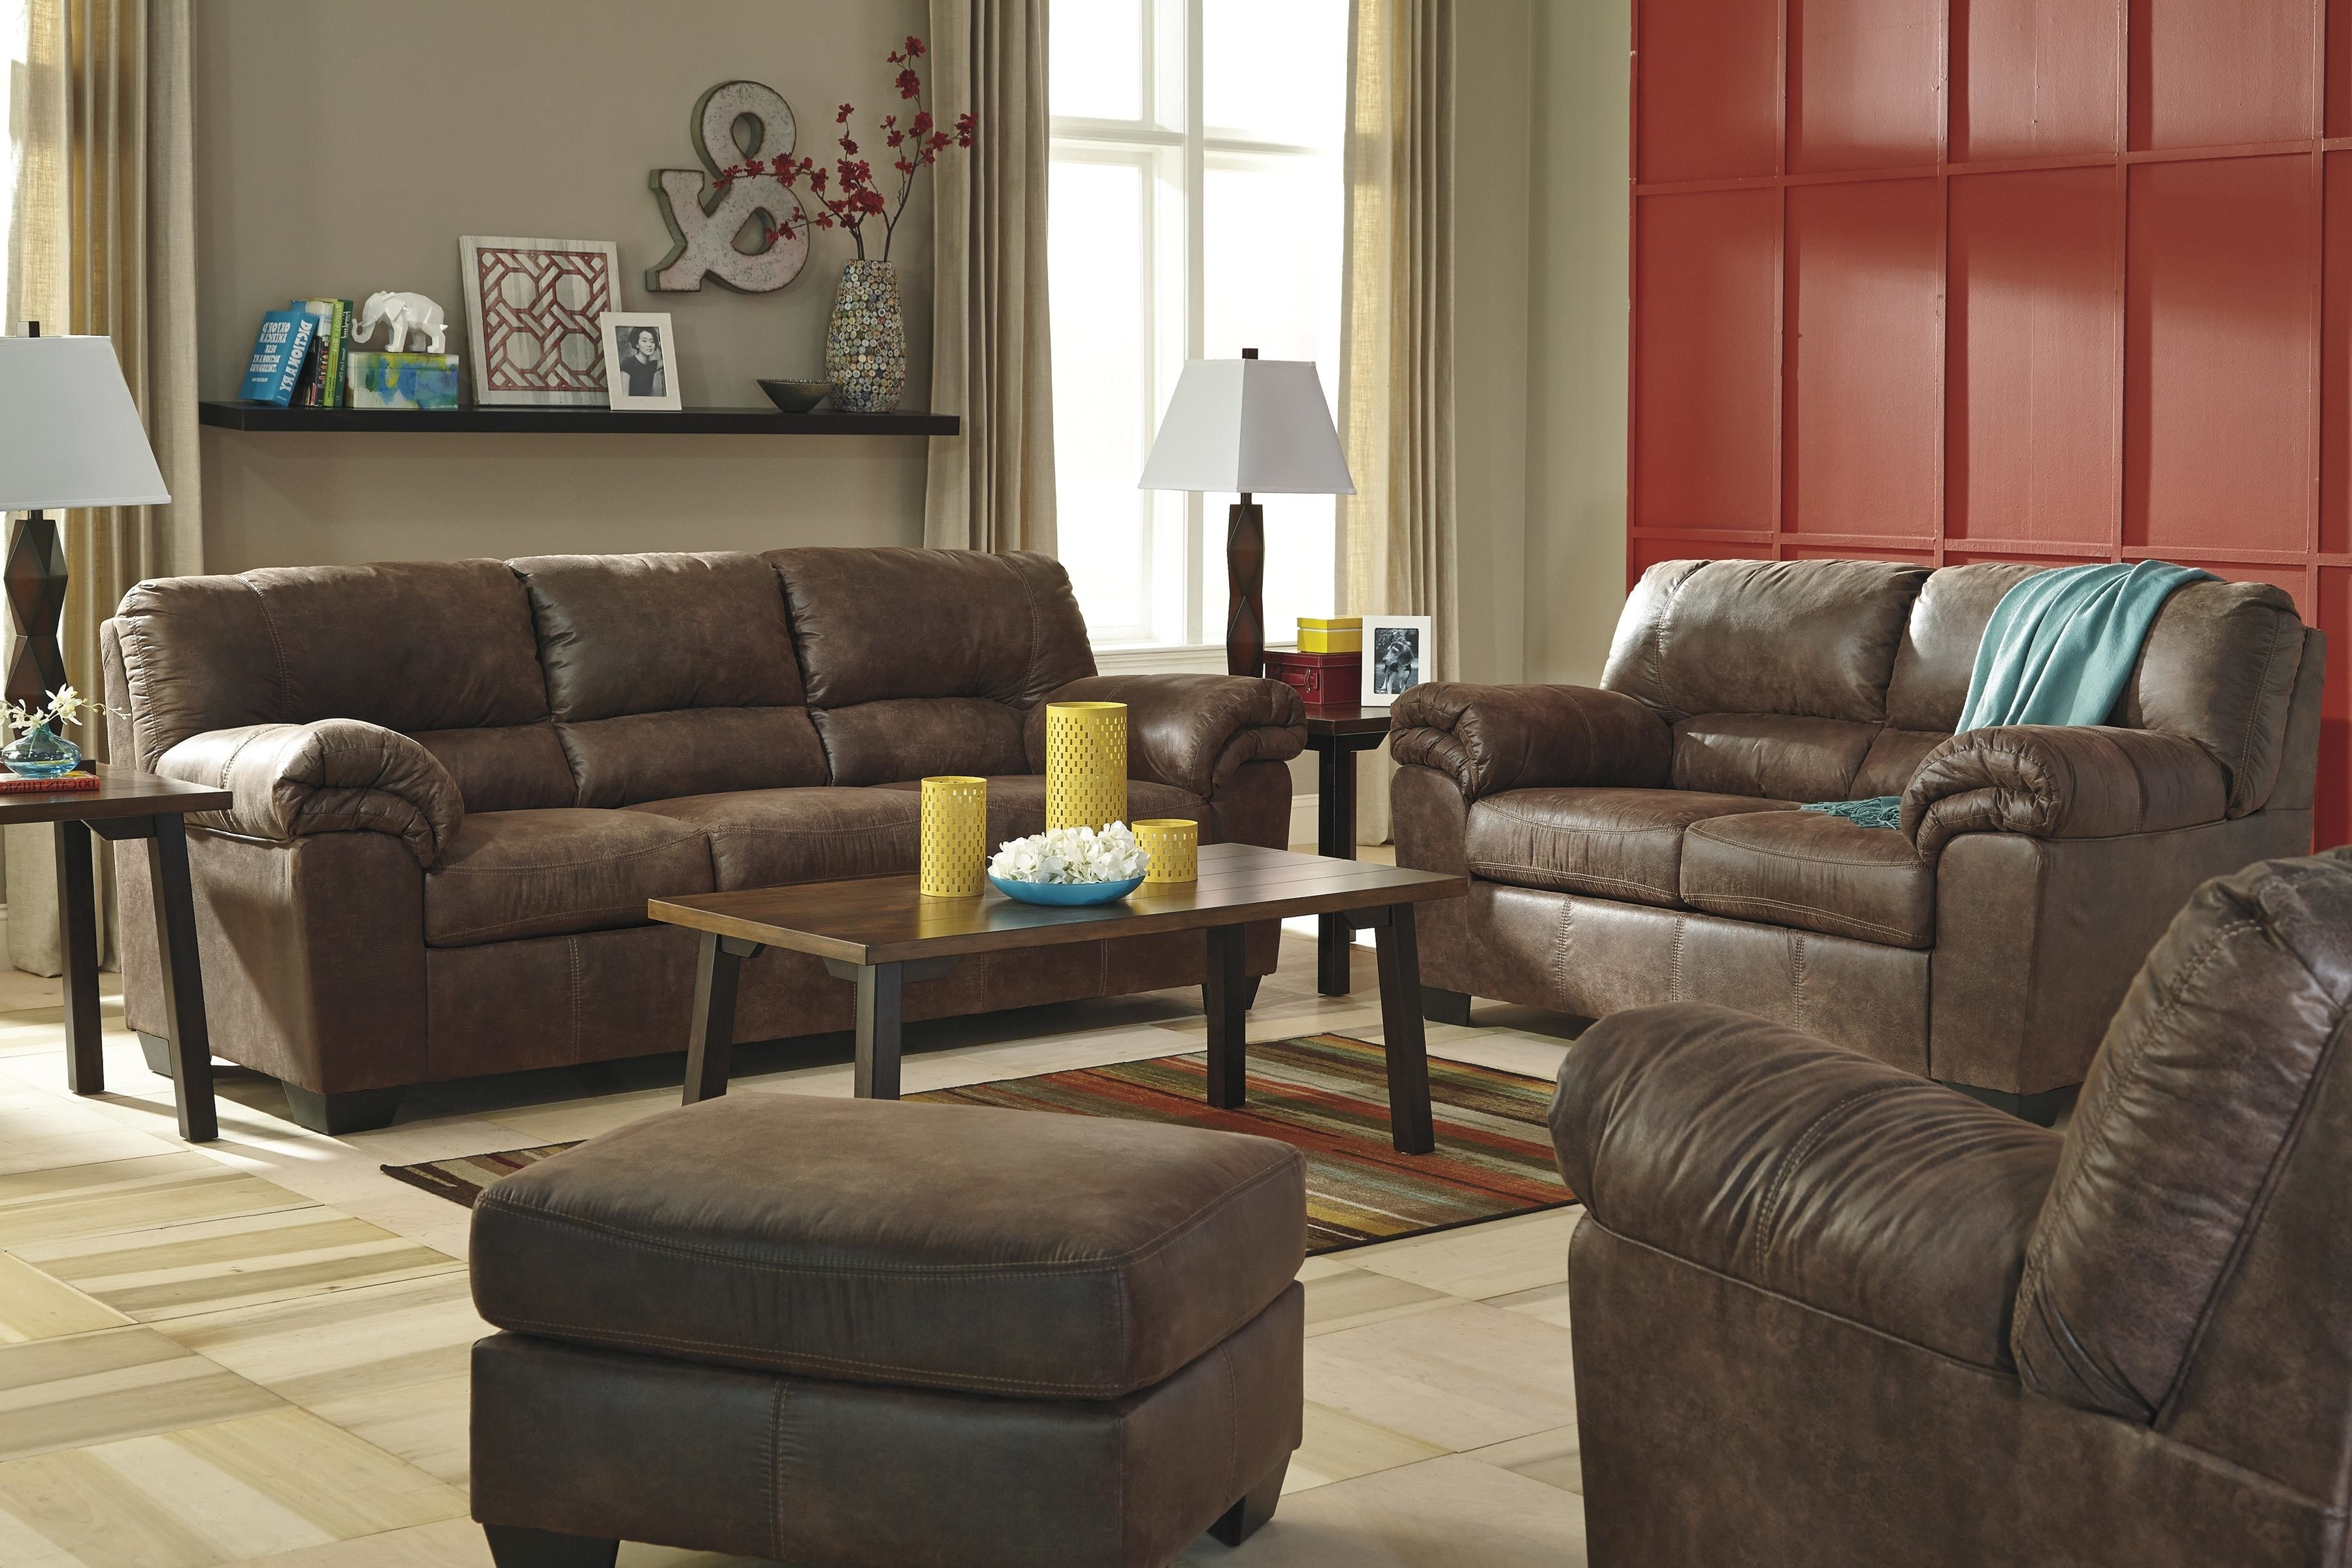 Harrisburg Pa Sectional Sofas In Most Up To Date Ashley Furniture In Harrisburg Pa (View 9 of 20)